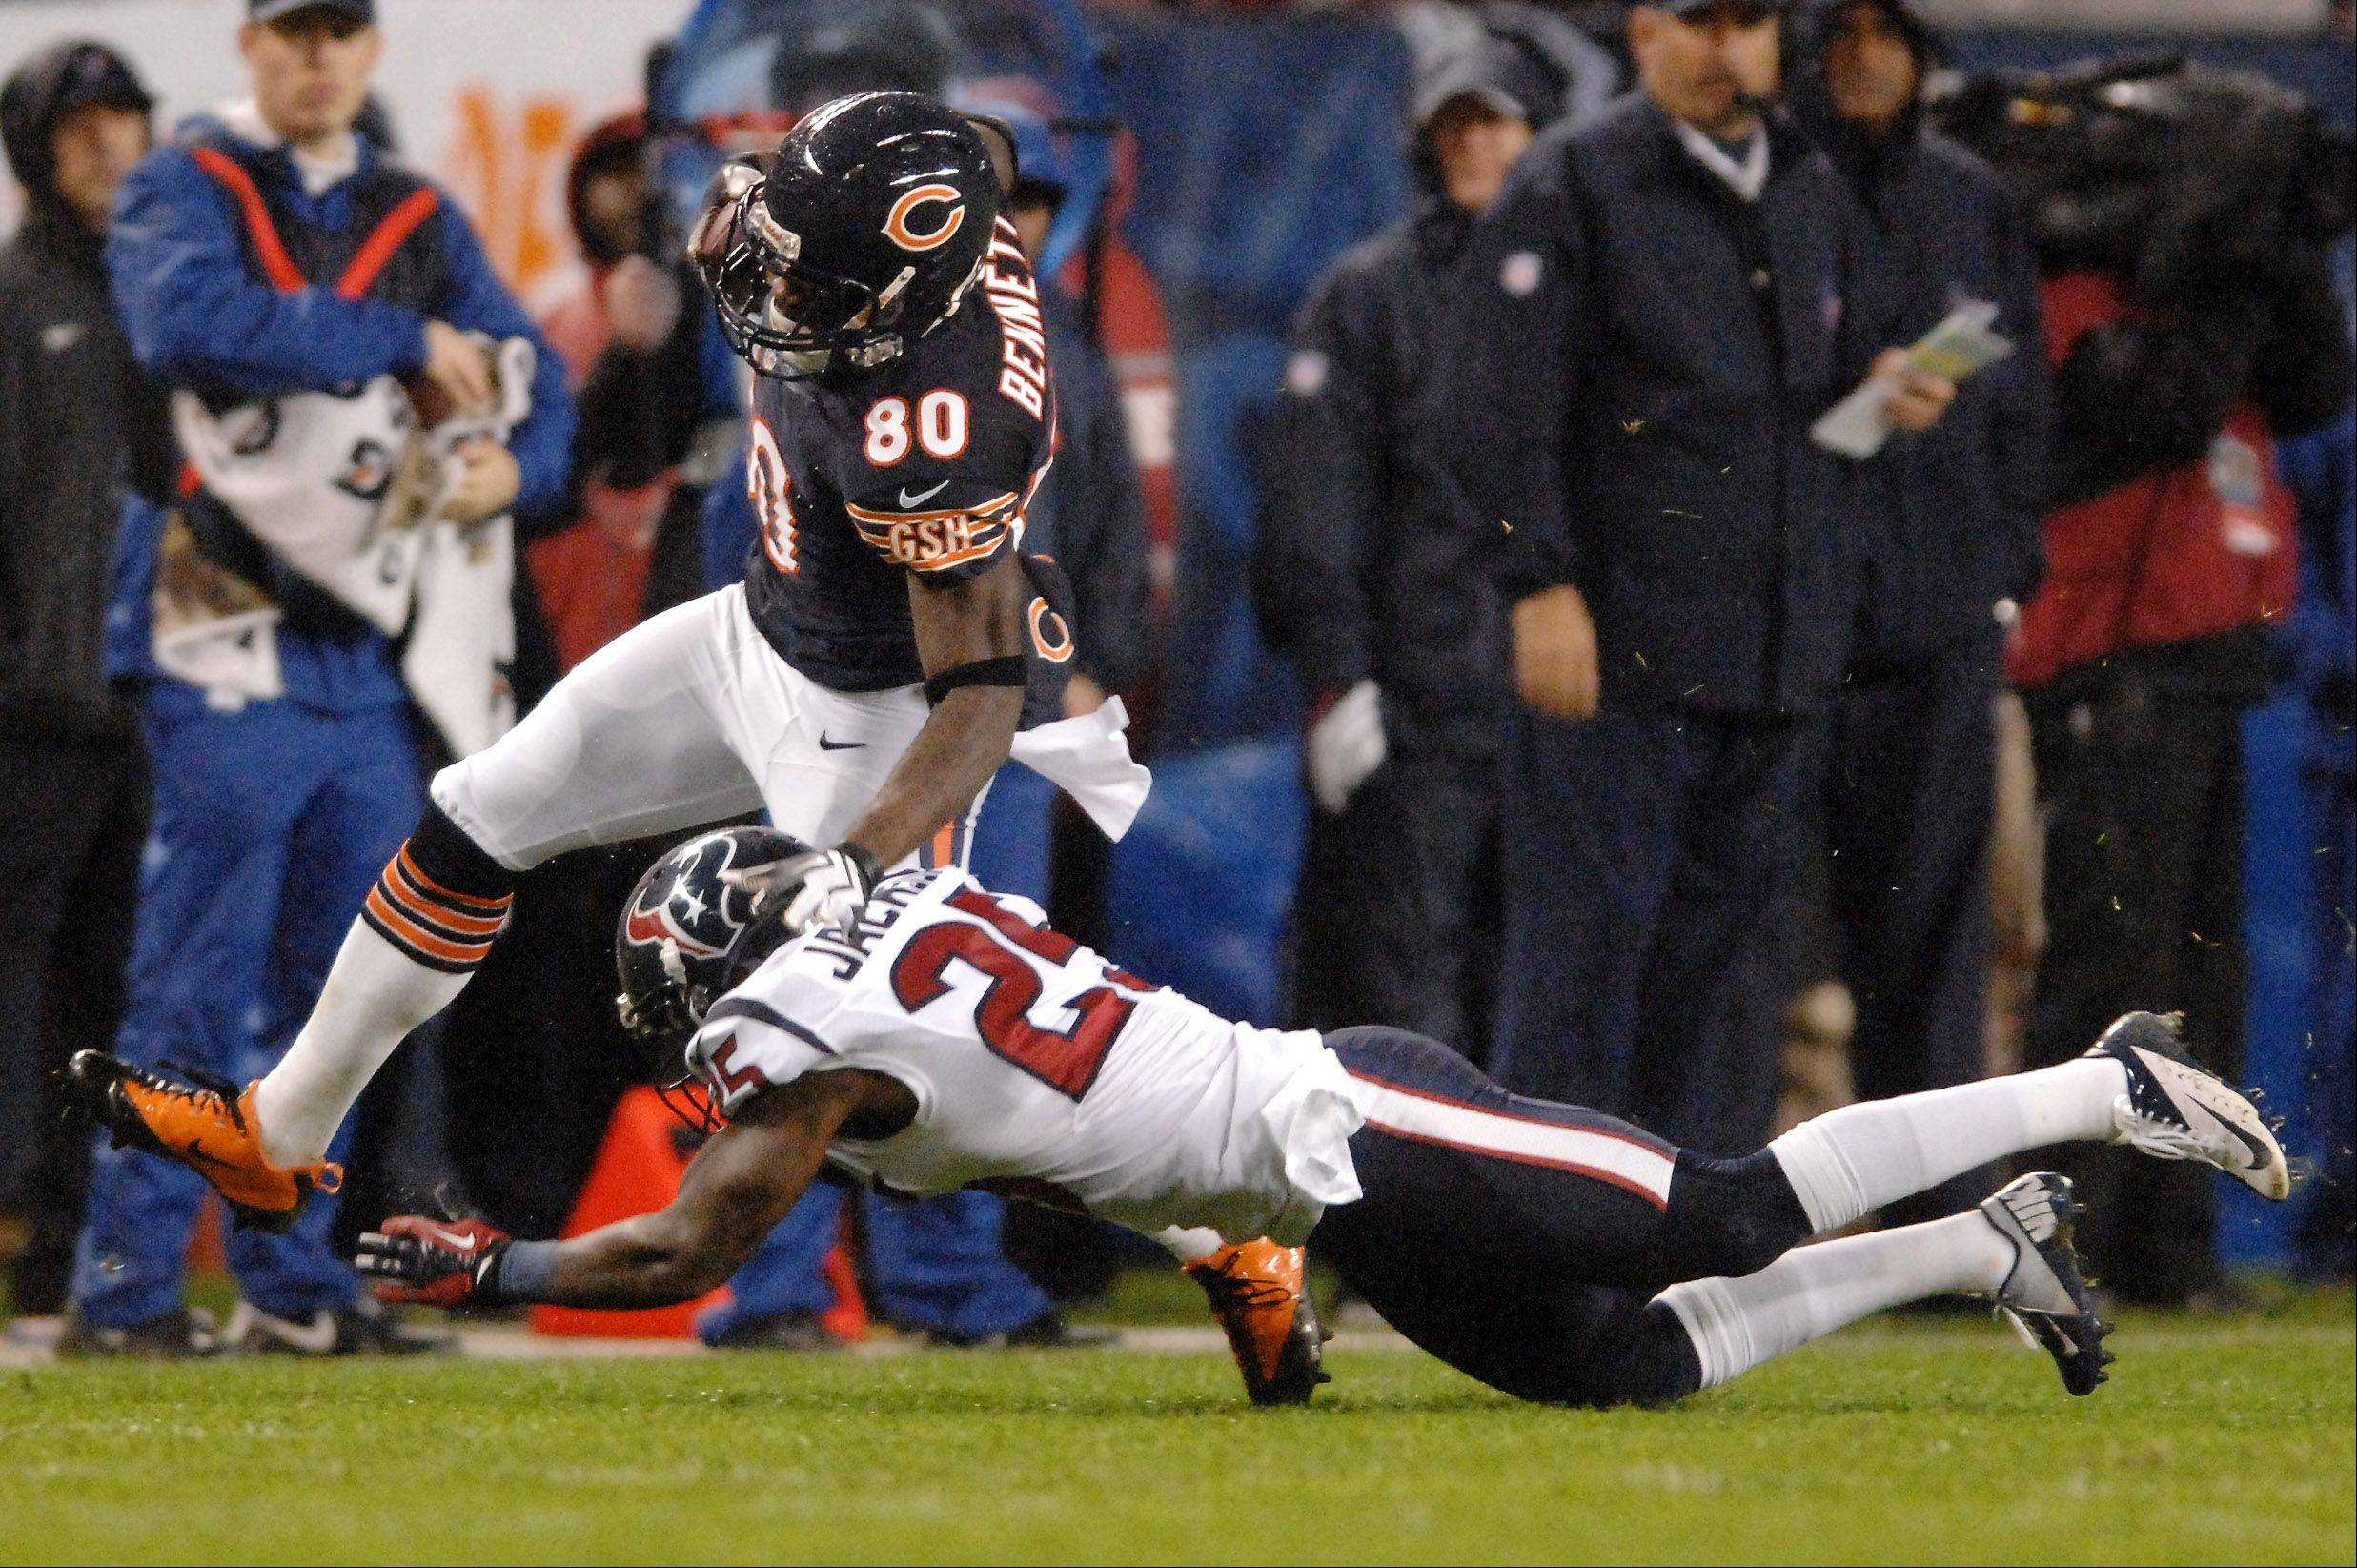 Chicago Bears wide receiver Earl Bennett (80) picks up some yards after the catch while breaking a tackle by Houston Texans cornerback Kareem Jackson (25) during Sunday's game.